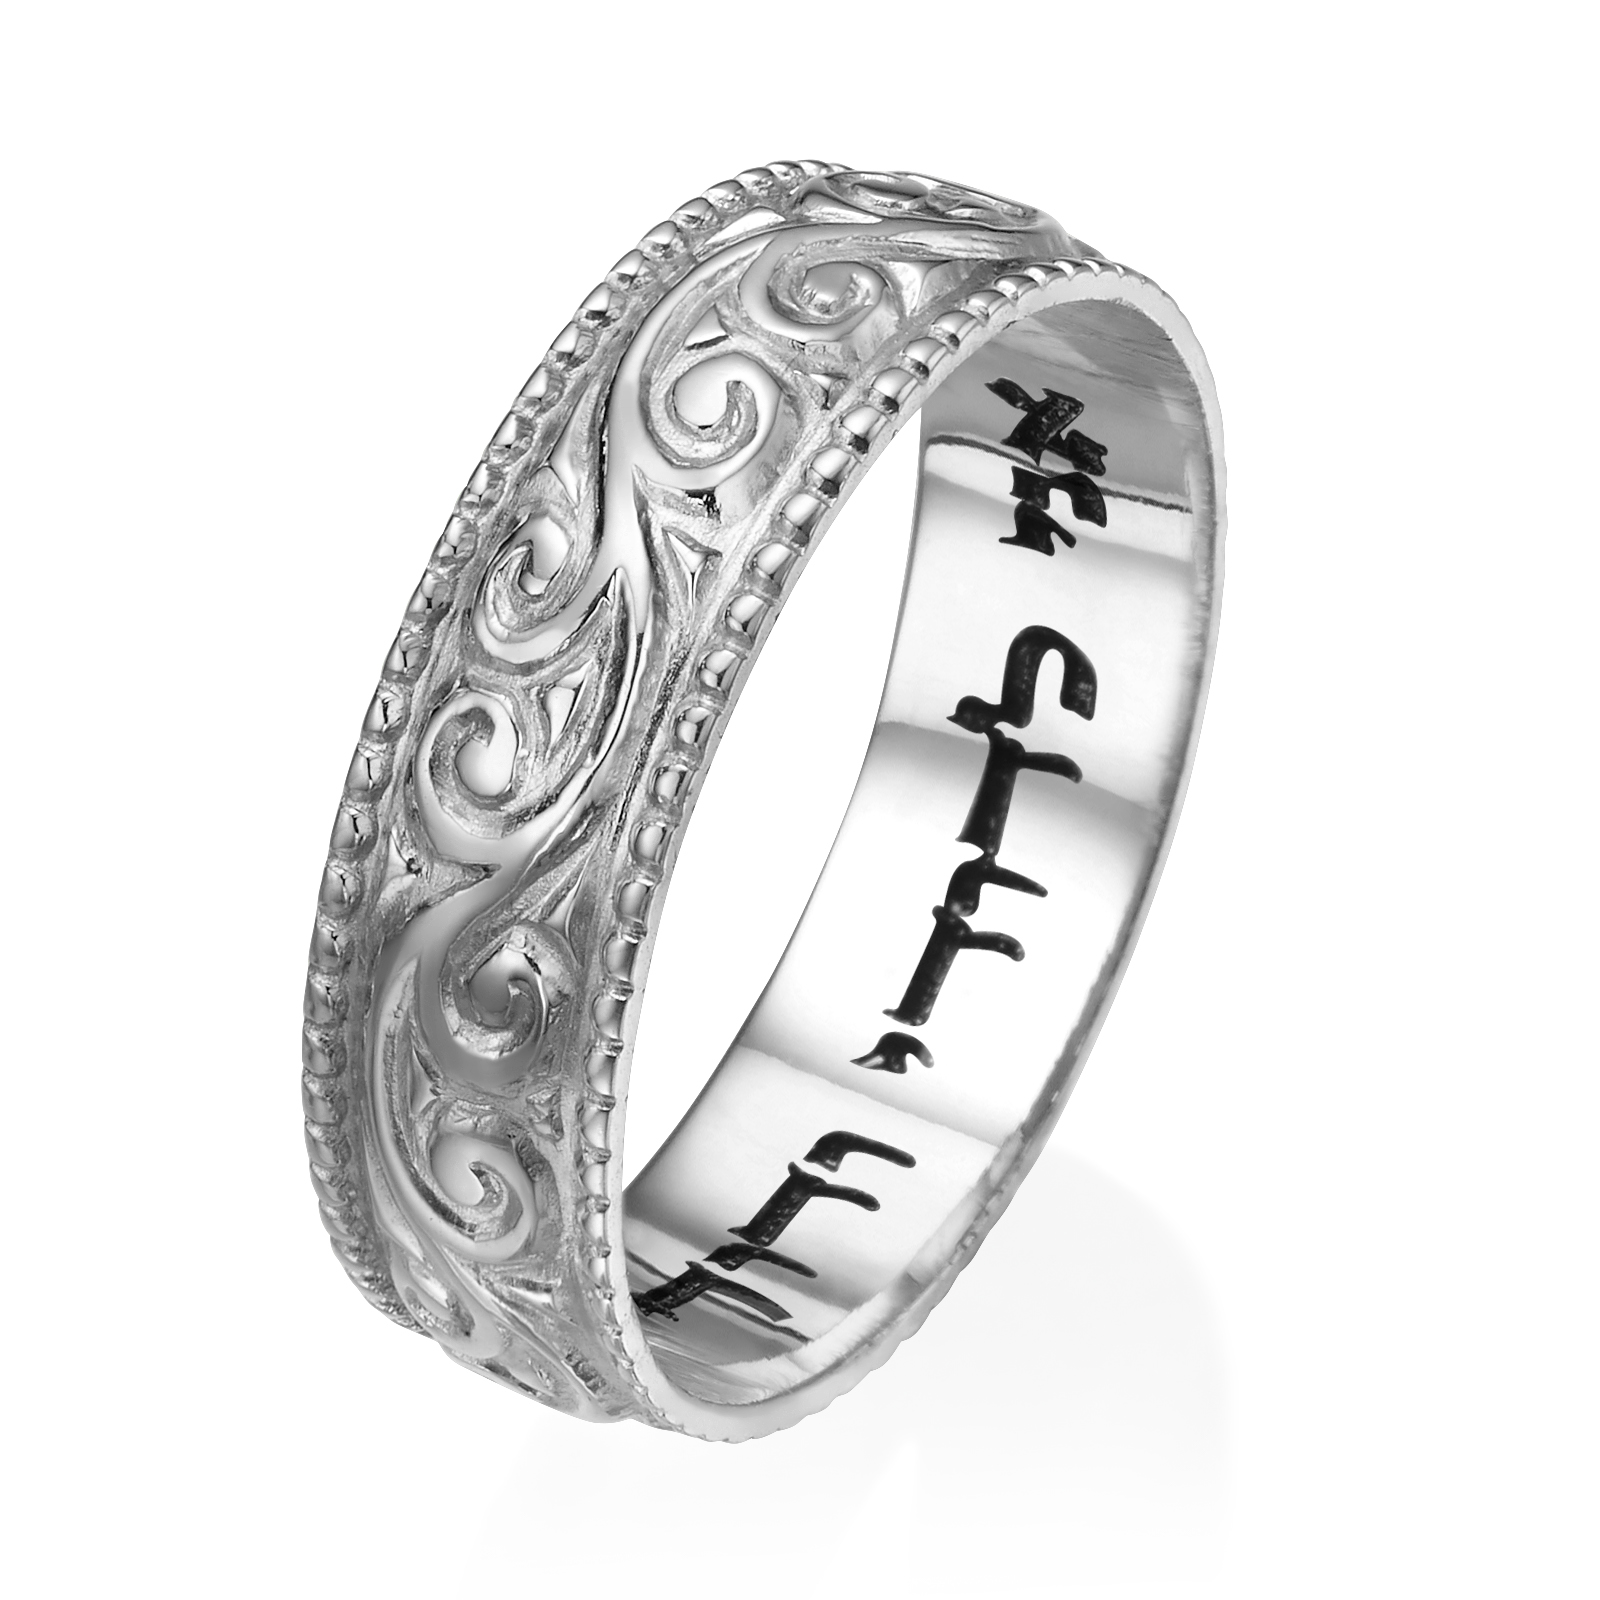 Elaborate White Gold Wedding Band Laser Engraved - Baltinester Jewelry